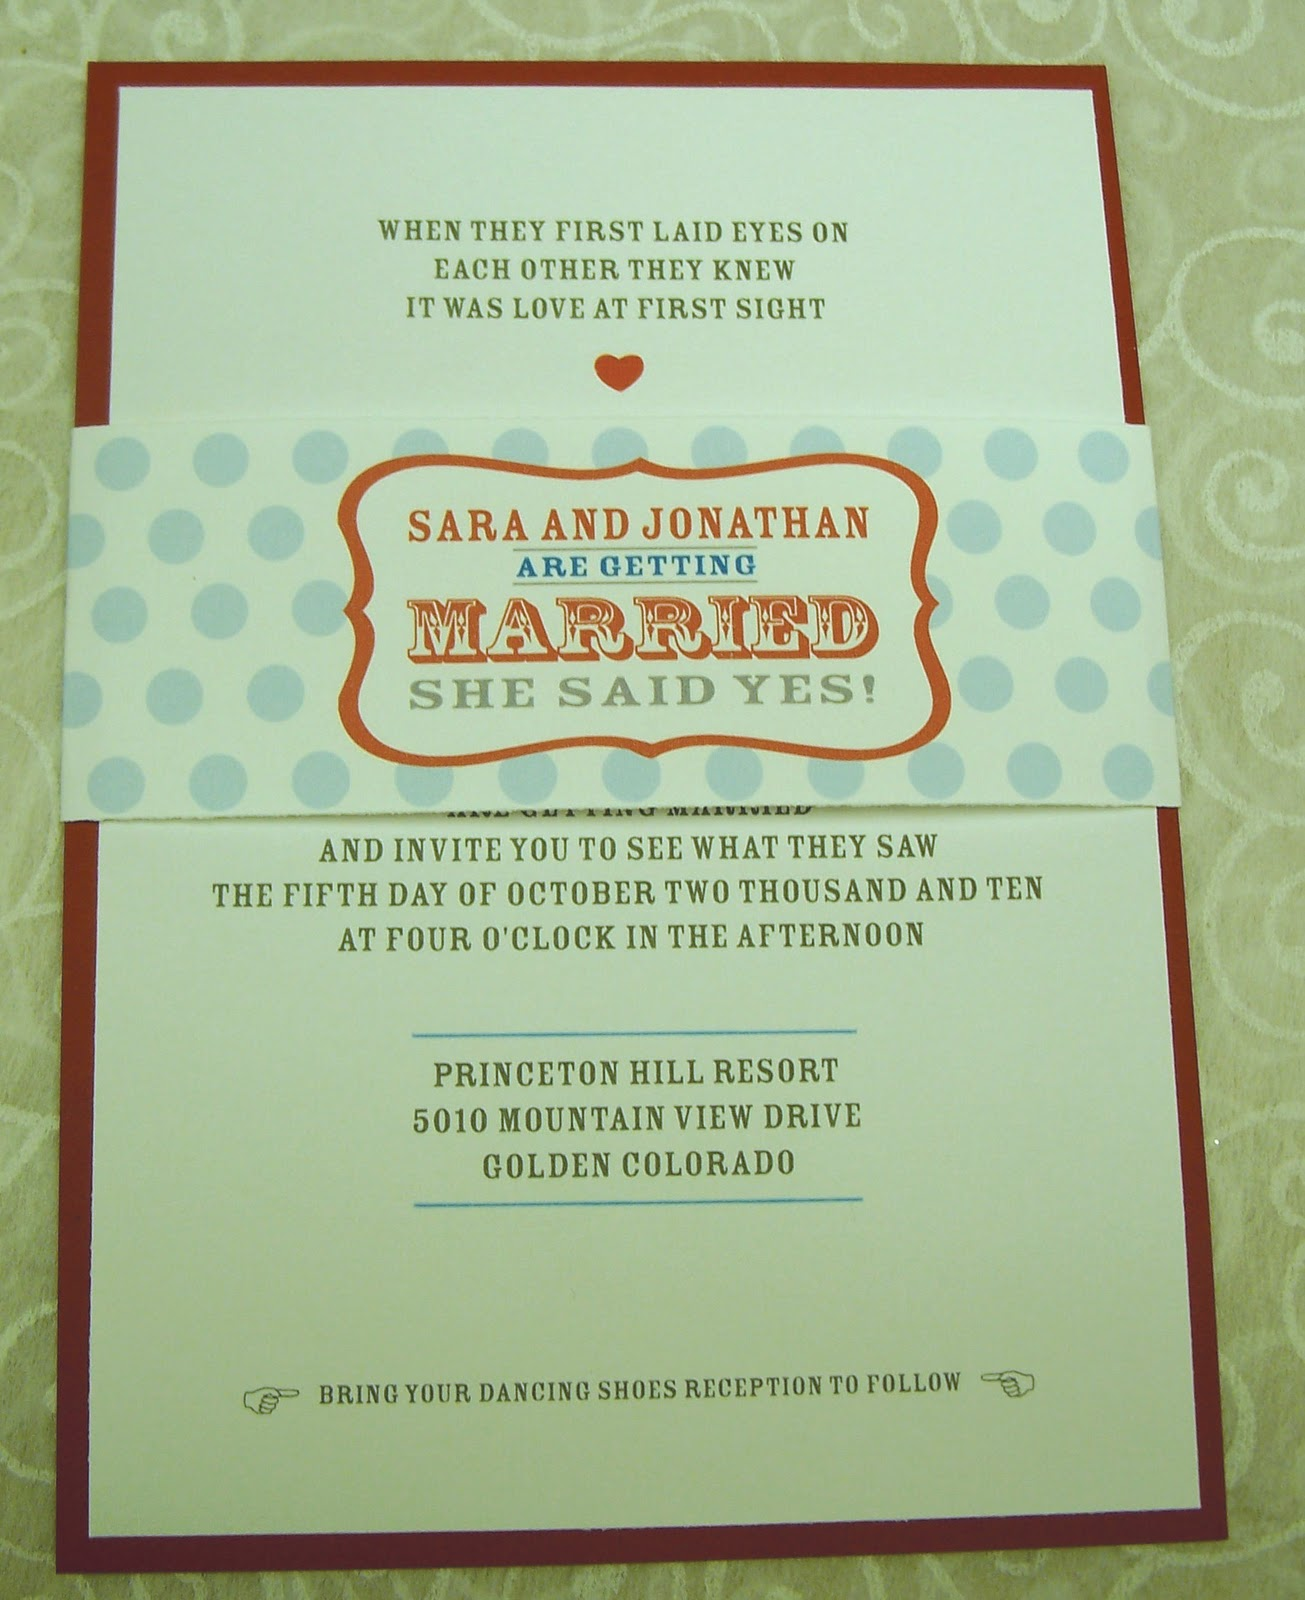 Wedding Invitations Samples: DIY WEDDING PROJECTS AND IDEAS FOR